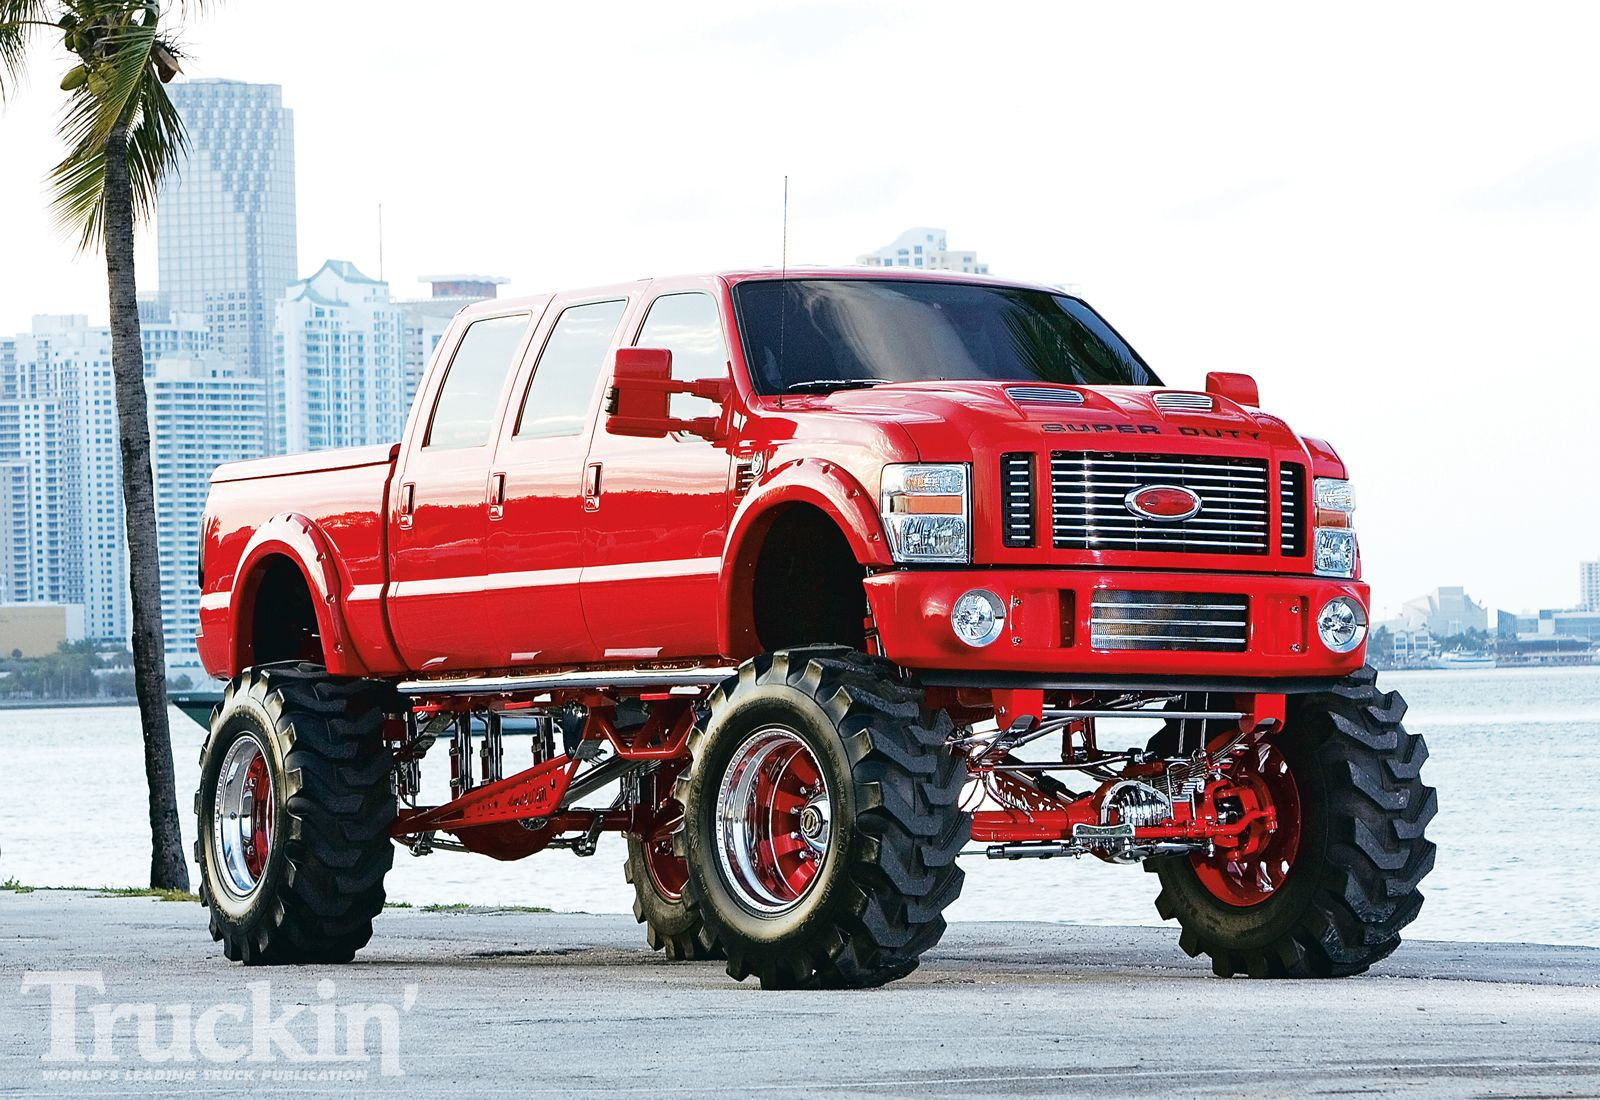 Images about trucks amp cars on pinterest ford trucks and ford trucks - Pics Of Big Ass Trucks On Tractor Tires Page 13 Chevy Truck Lifted Trucksbig Trucksford